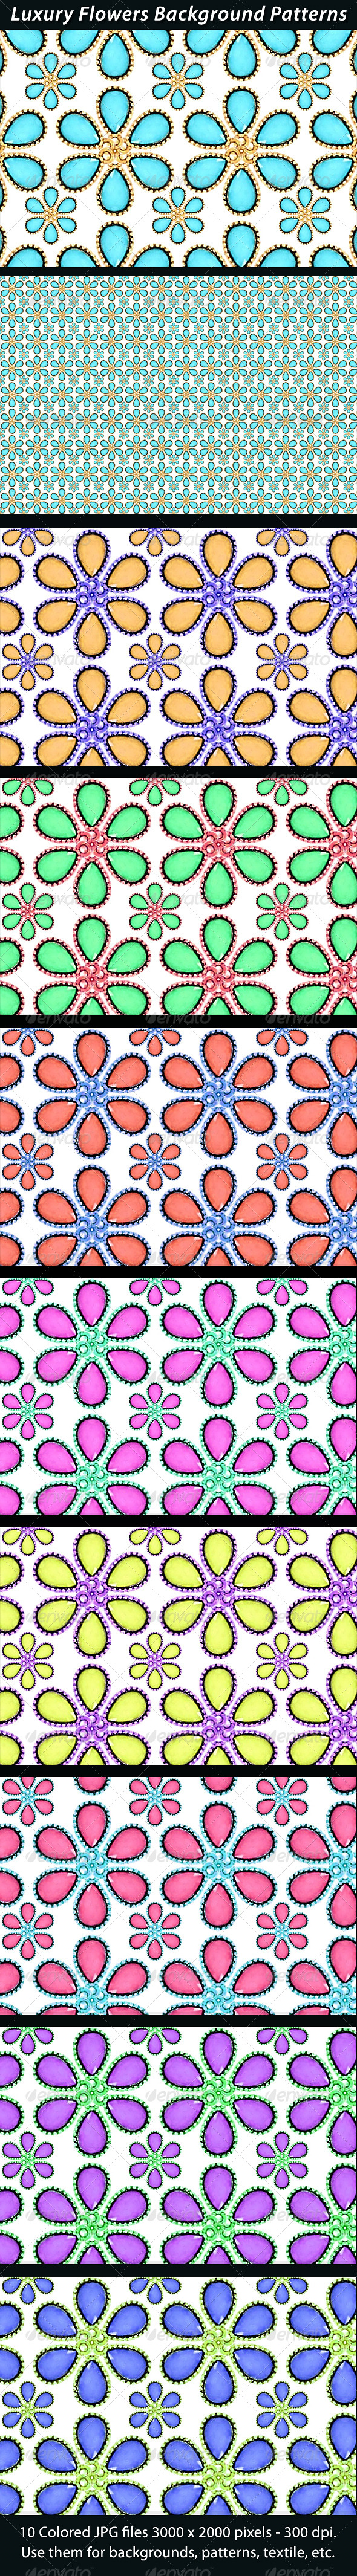 Luxury Flower Background Patterns - Patterns Backgrounds